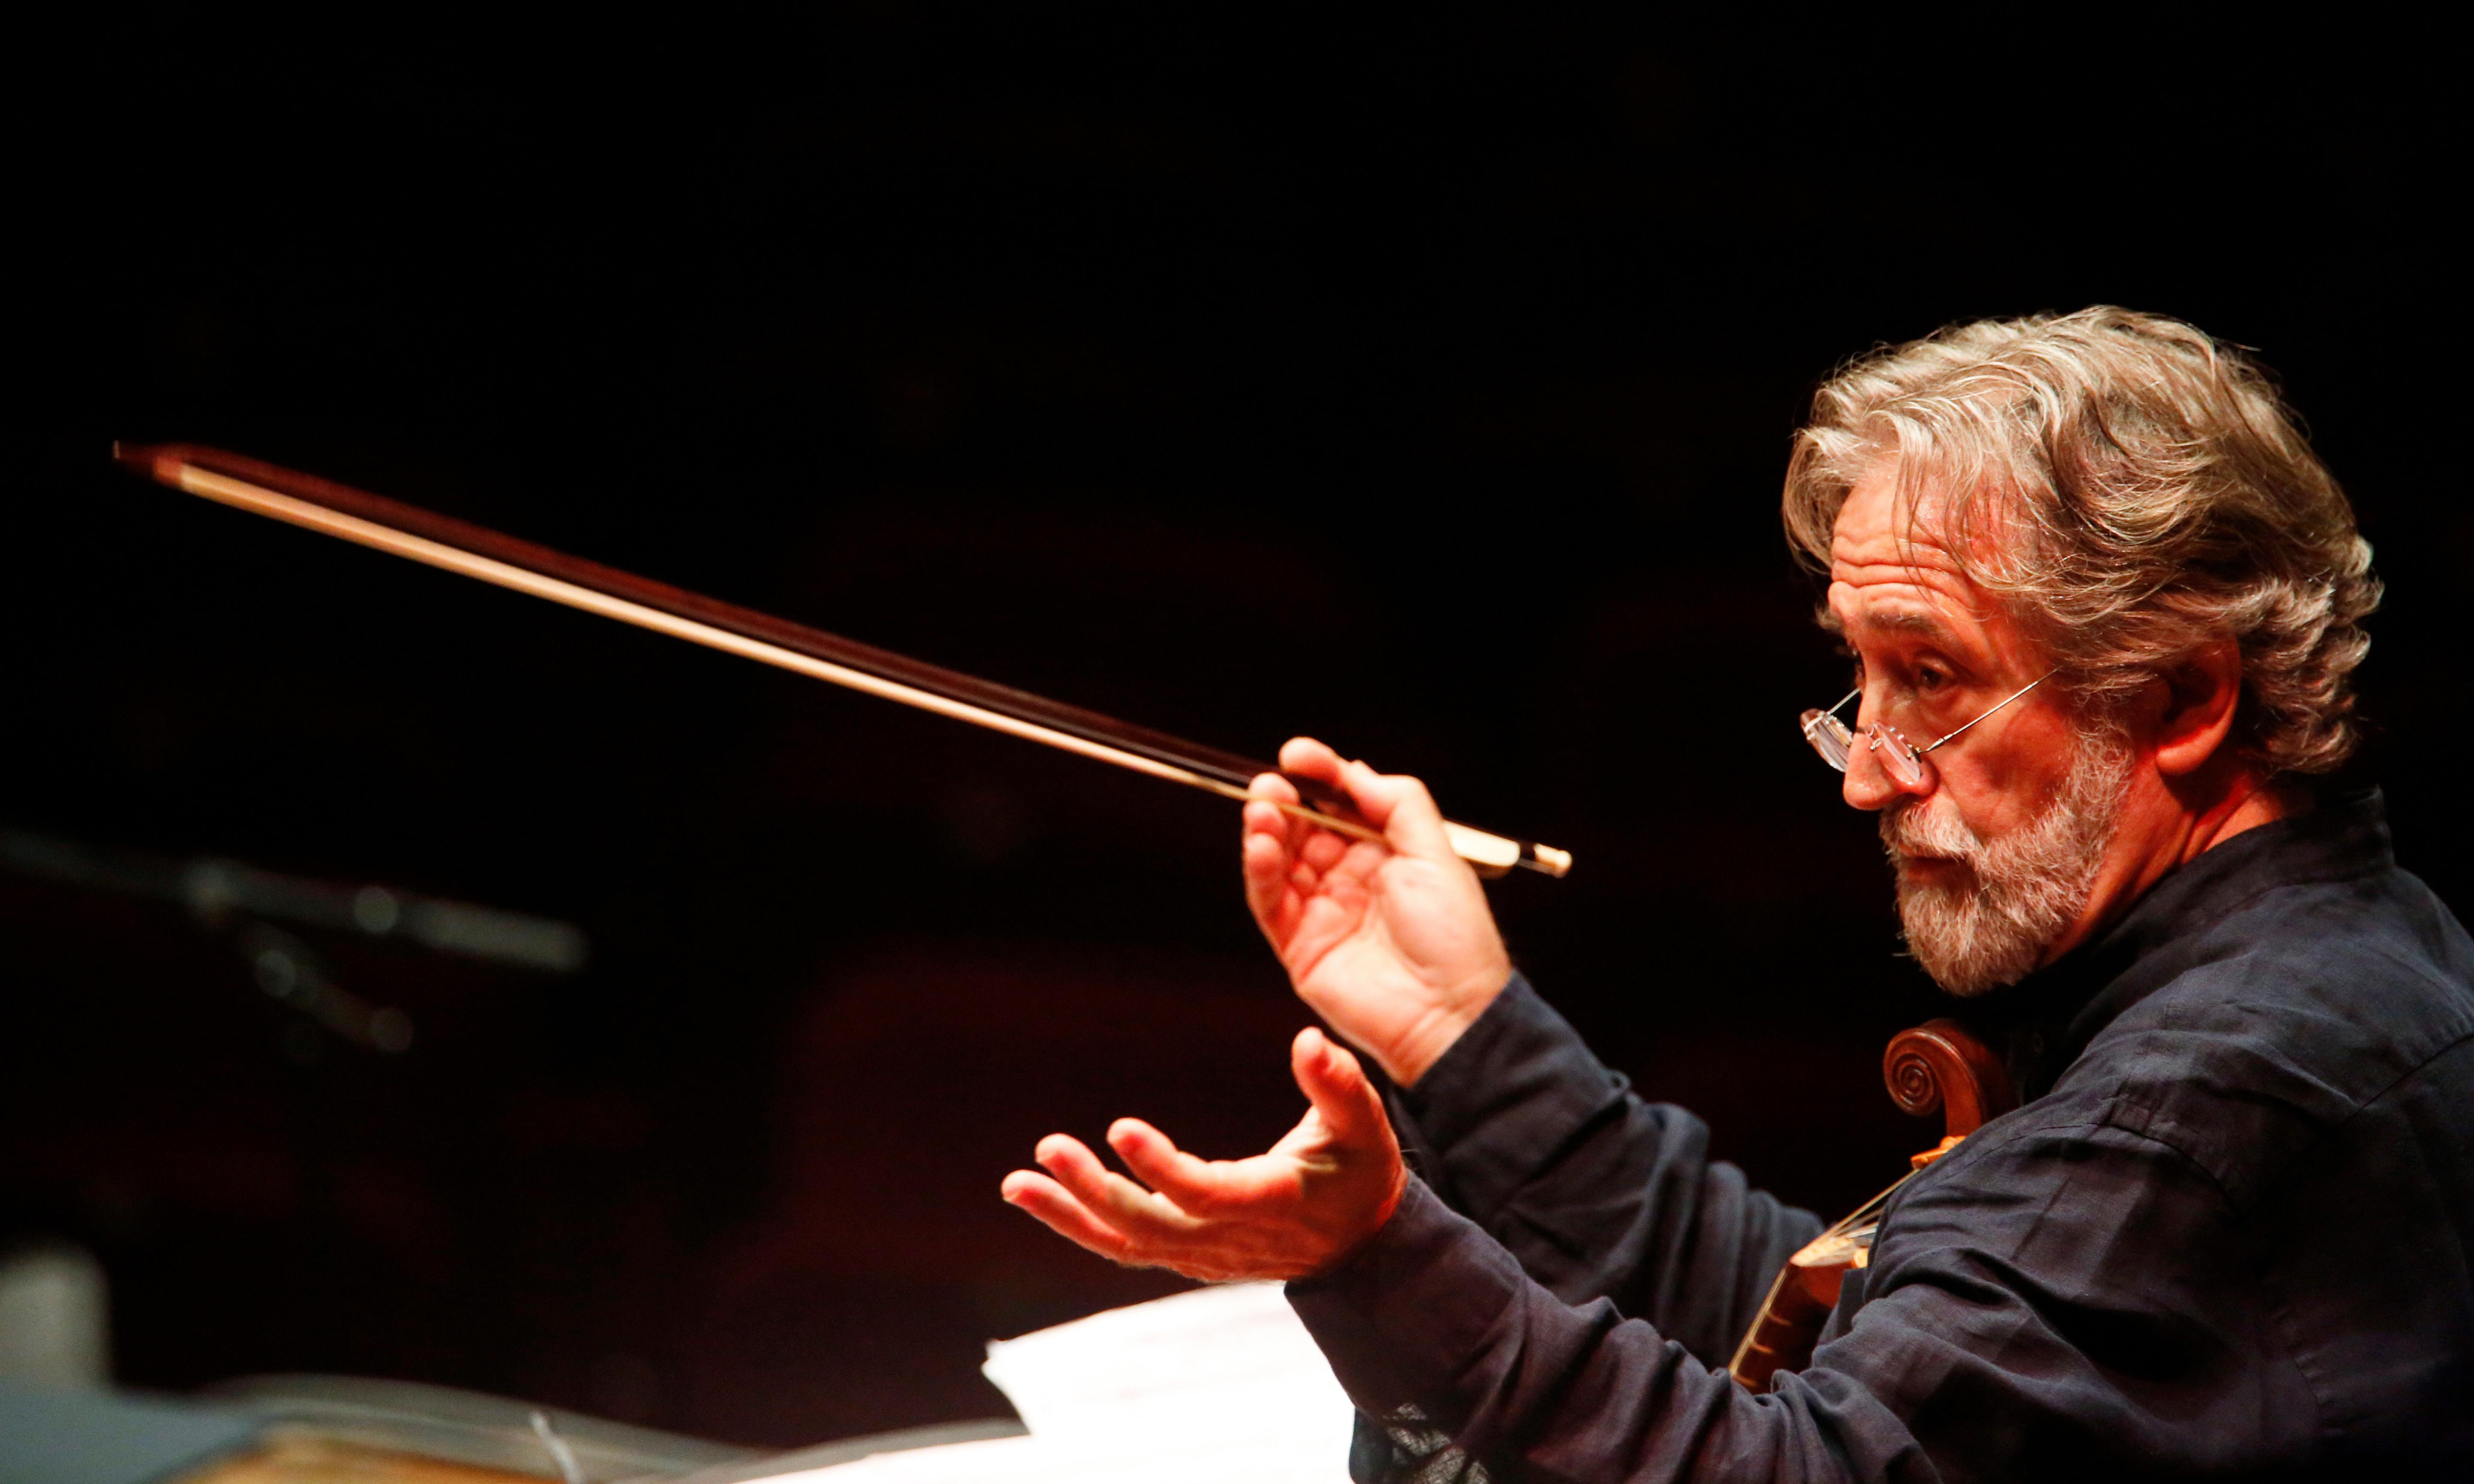 Home listening: Savall's Mozart, Bavouzet's Haydn – and more Mozart